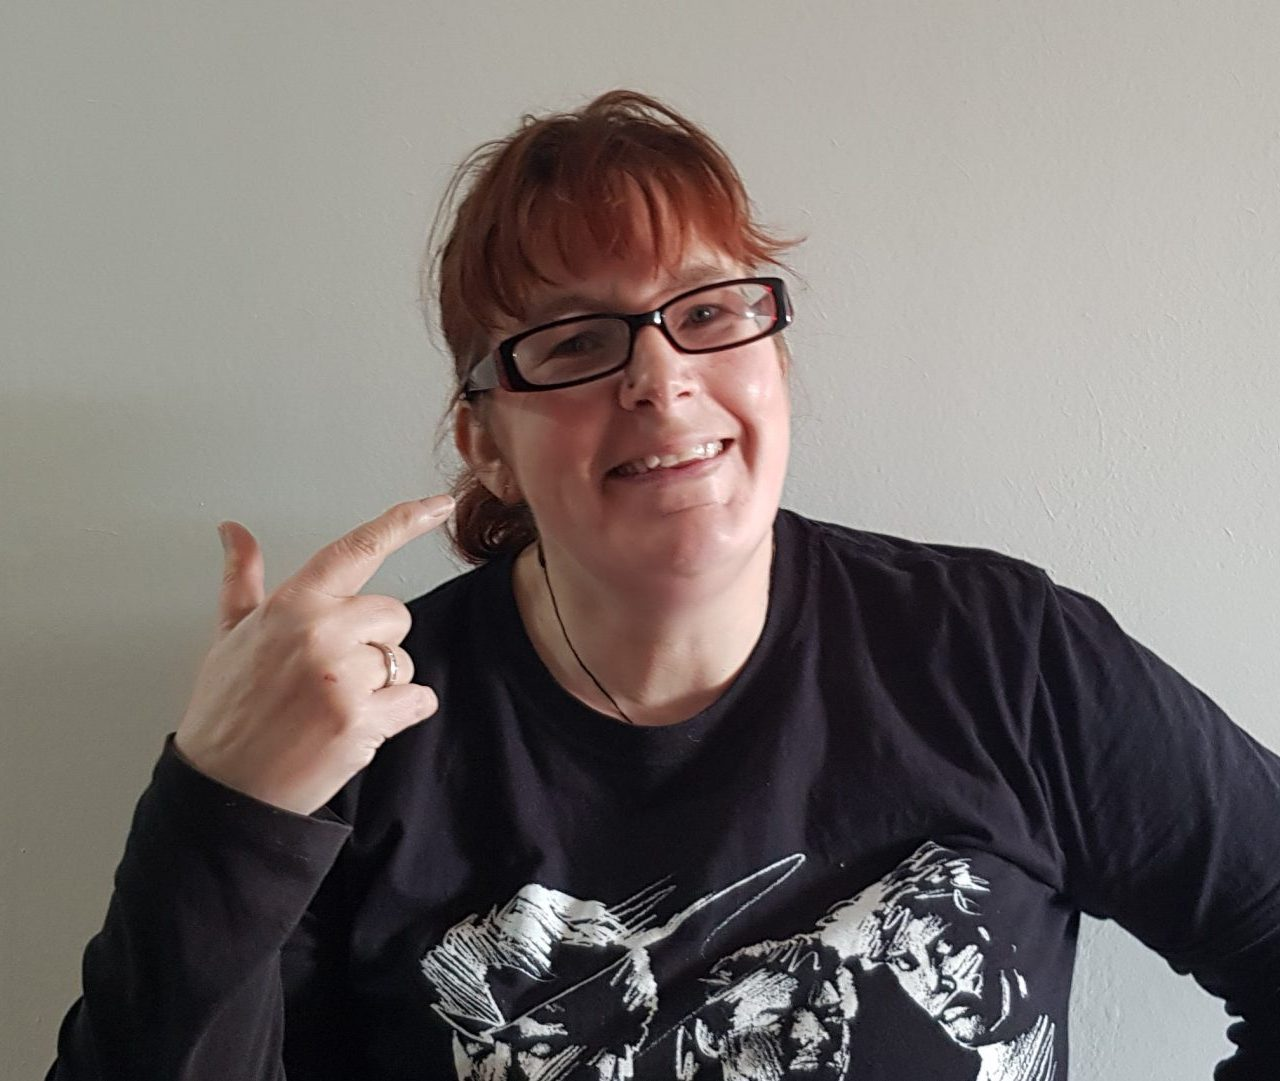 kitty fitton with red hair and glasses pinting aat herself and grinning.